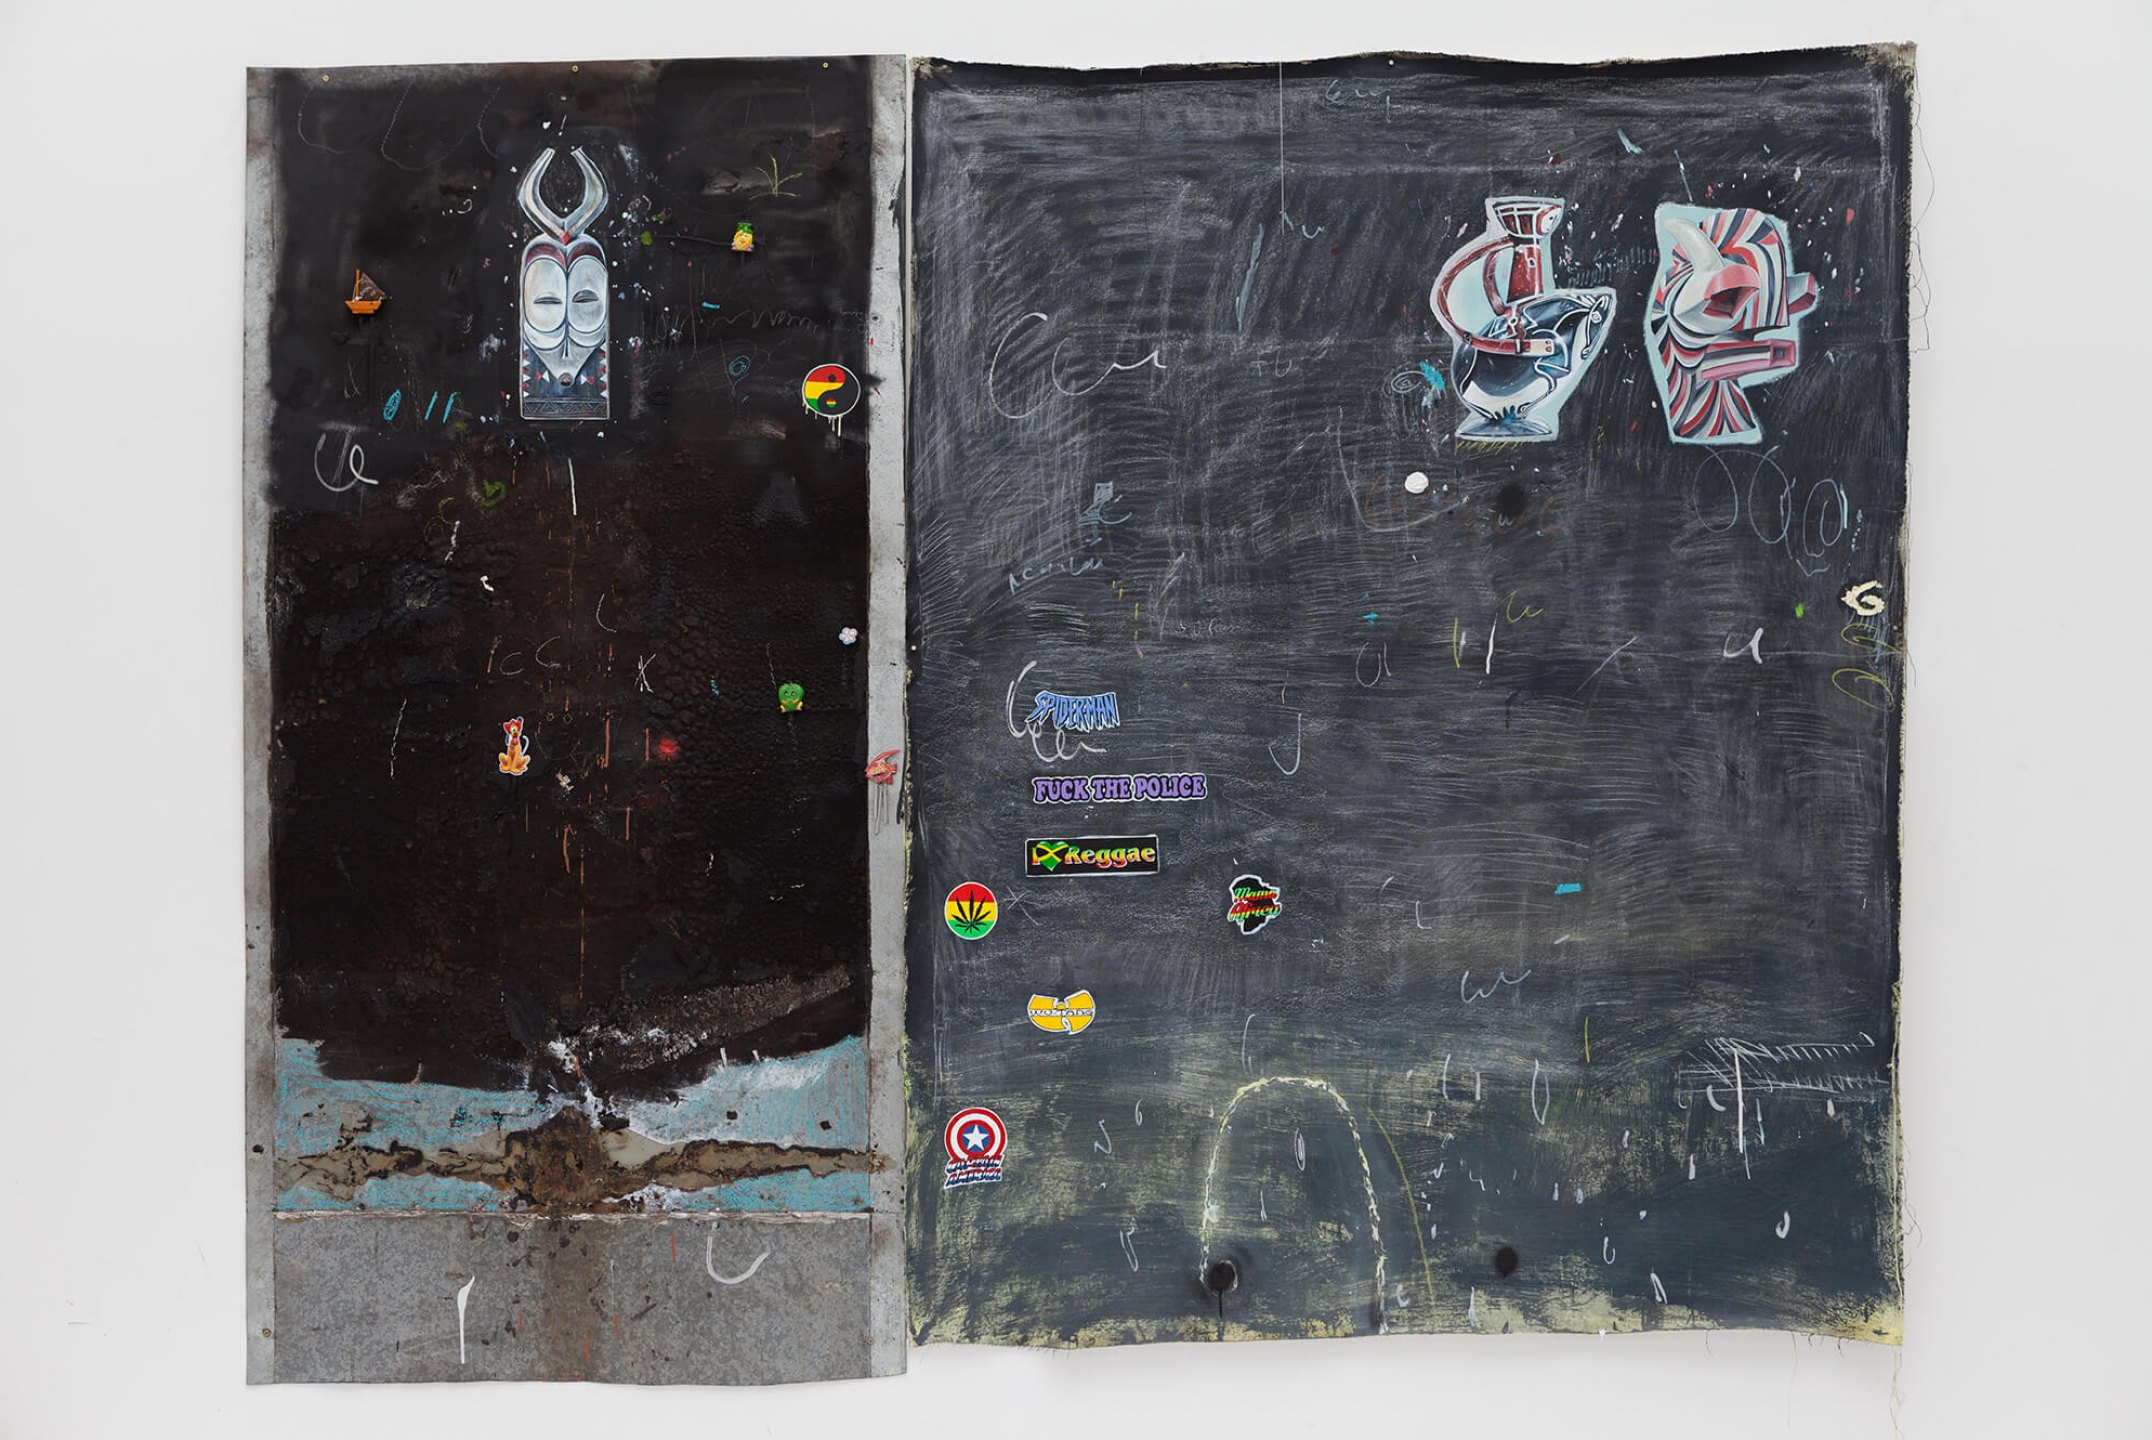 Paulo Nimer Pjota, <em>Wardrobe door</em>, 2016, acrylic, pencil and pen on canvas and iron plate, 255 × 200 cm - Mendes Wood DM